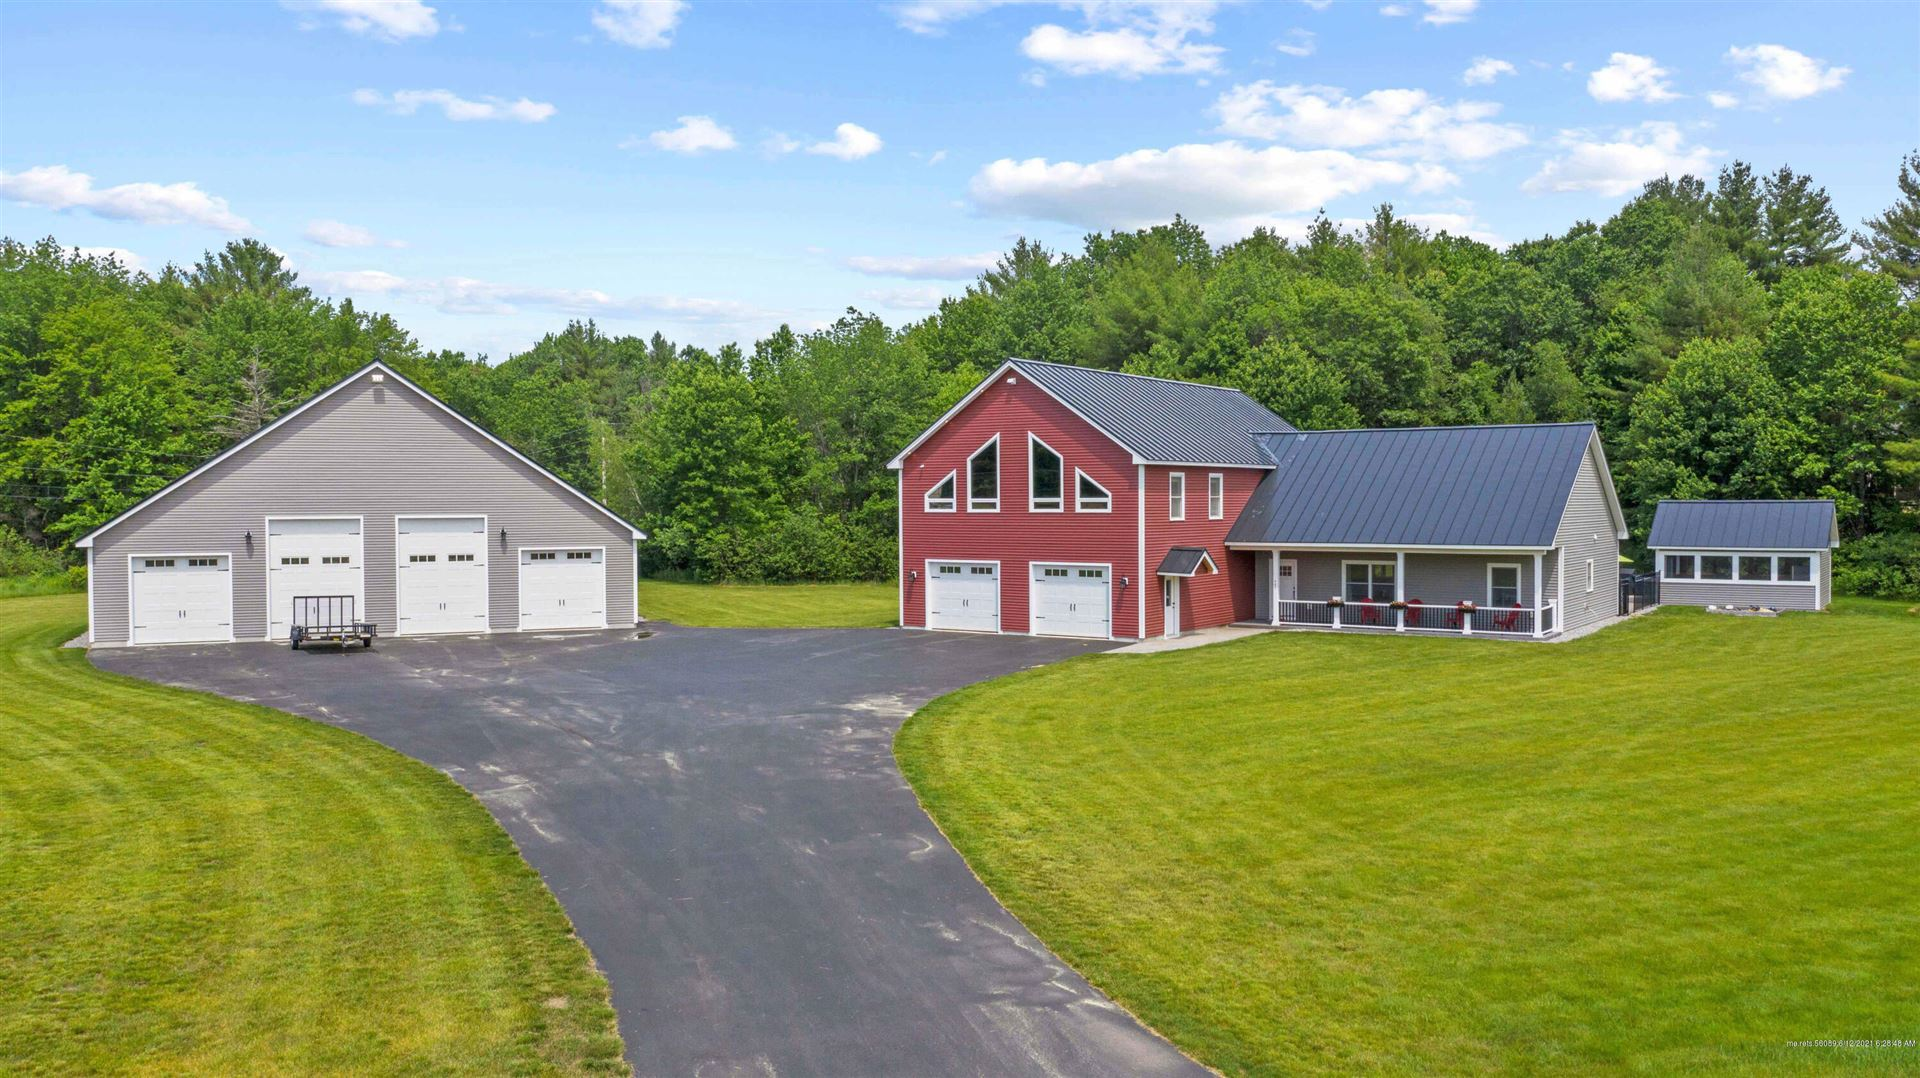 Photo of 407 Falmouth Road, Windham, ME 04062 (MLS # 1495903)